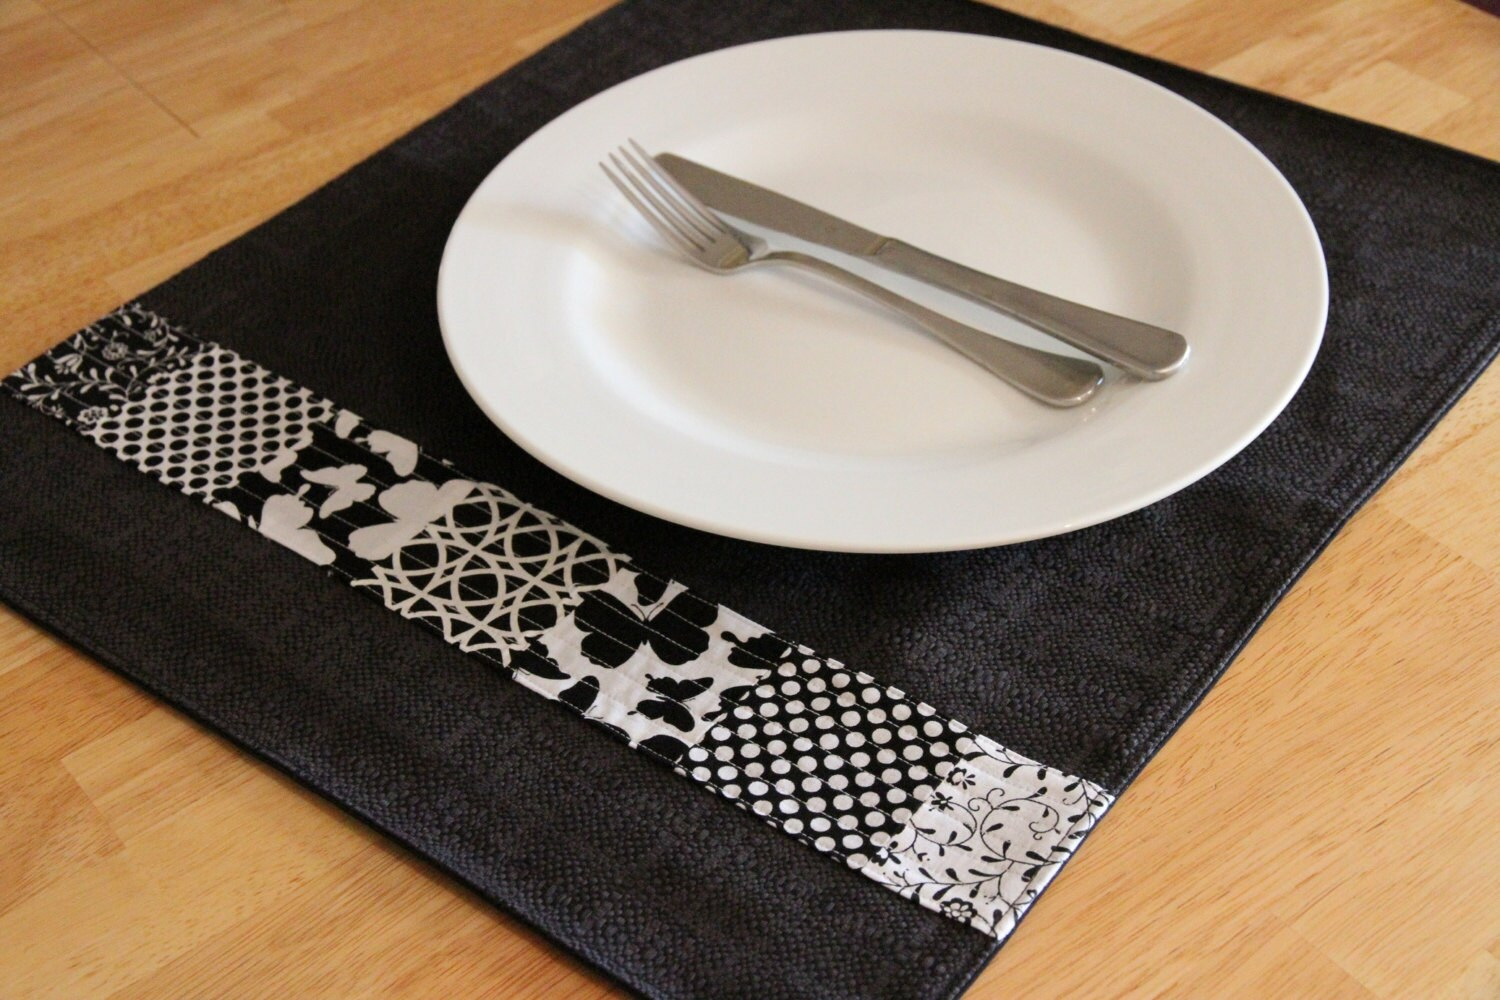 Black and White Butterfly Hand Made Placemats Set of 6 - Fluturi